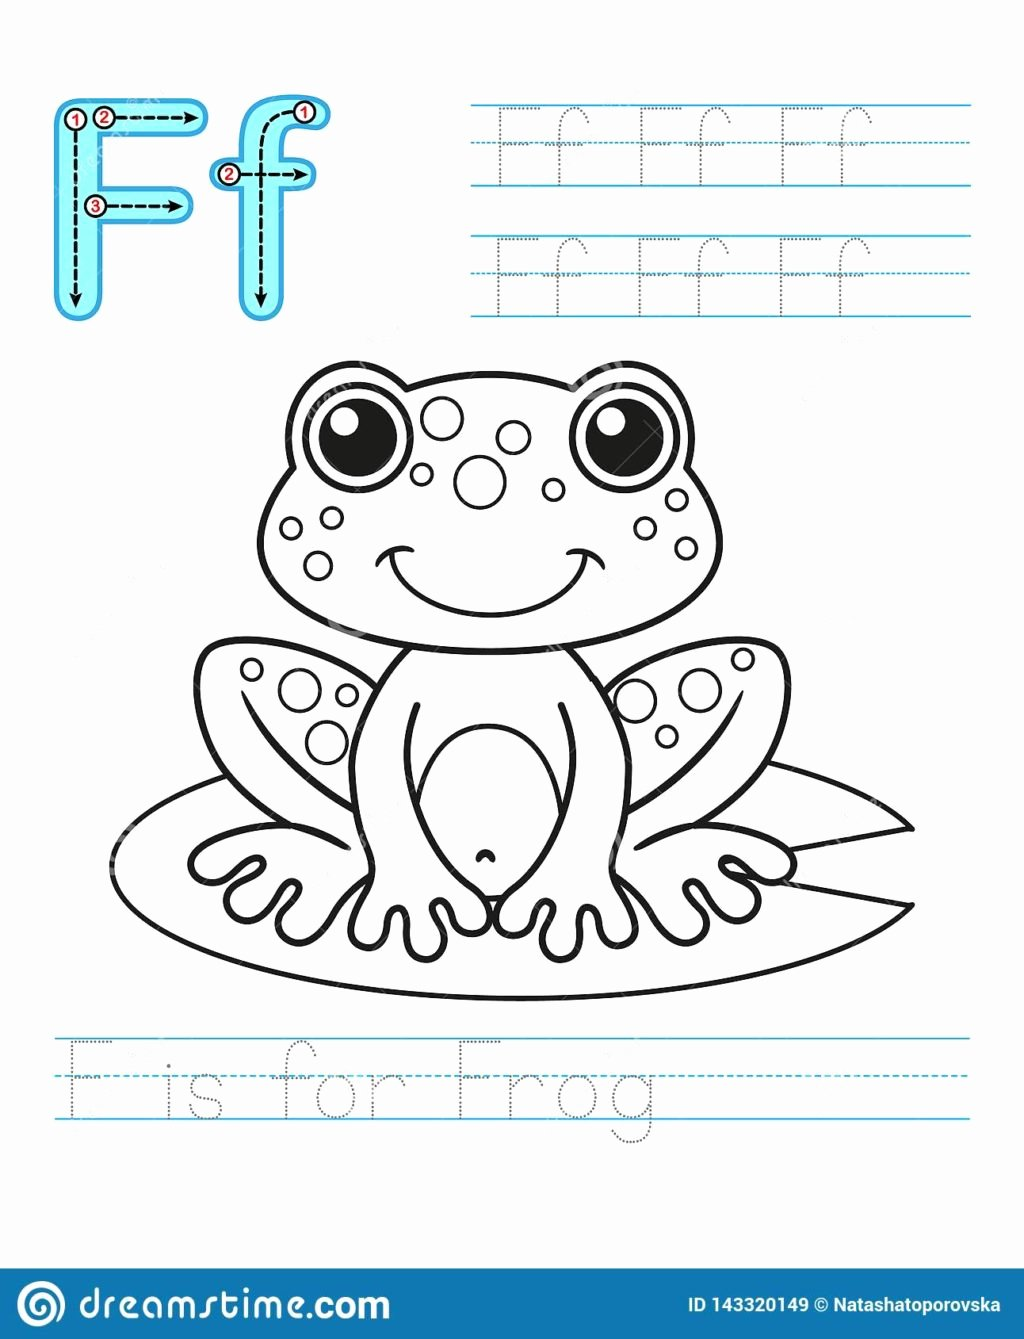 Simple Worksheets for Preschoolers Awesome Math Worksheet Coloring Book Page Printable Worksheet for